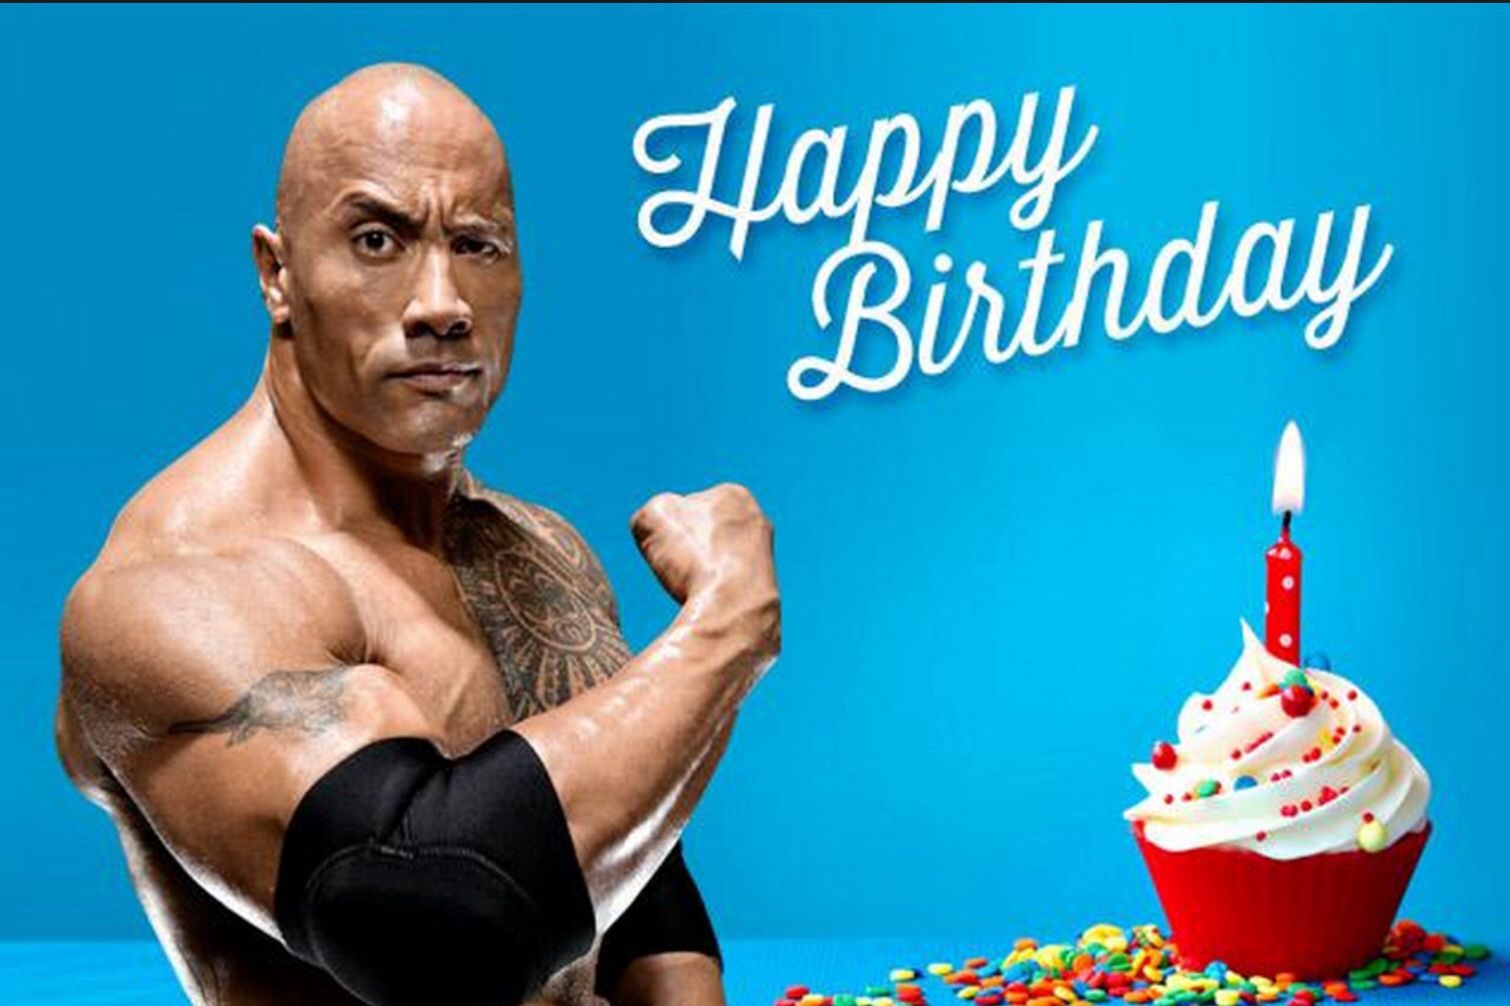 Happy 42th Birthday May 2 14 To The Best Of The Best In World Wrestling Rock I Love You Keep Rocking Happy Birthday Meme Birthday Meme The Rock Birthday